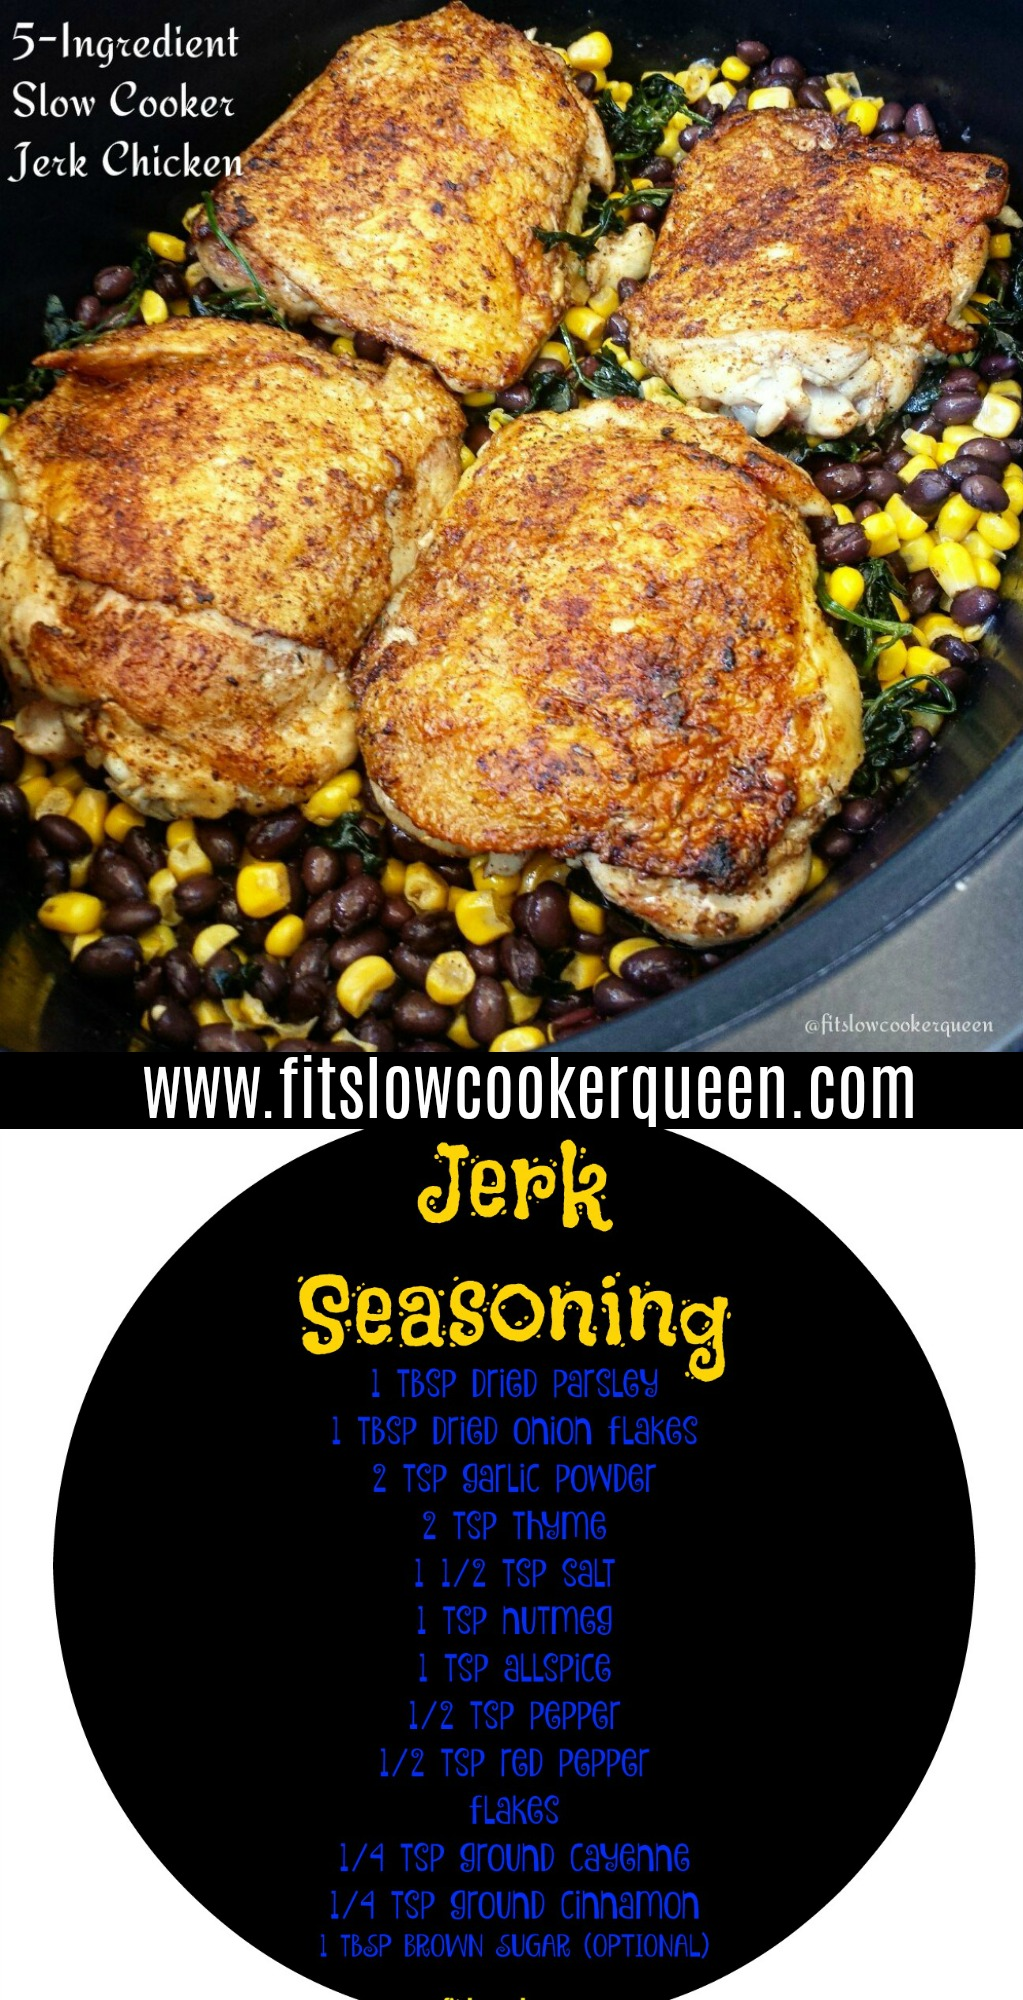 Only 5 ingredients! Grab your f& favorite jerk seasoning or use my homemade one for this quick, easy & healthy slow cooker recipe.